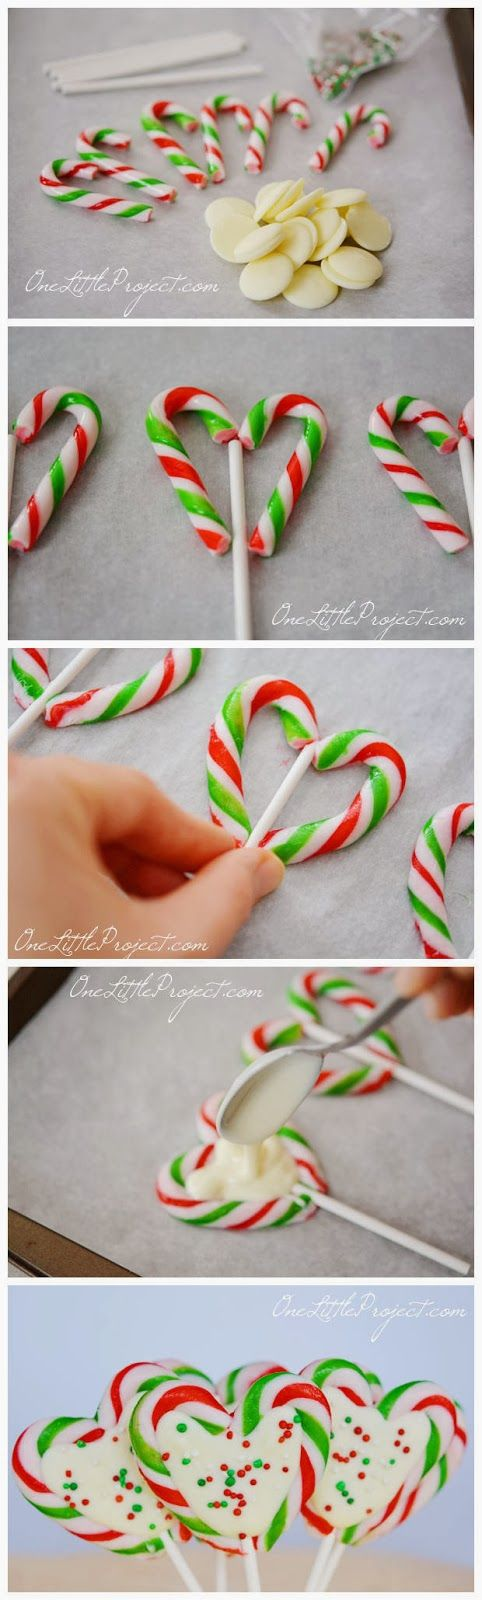 Candy Cane Hearts - Red Sky Food